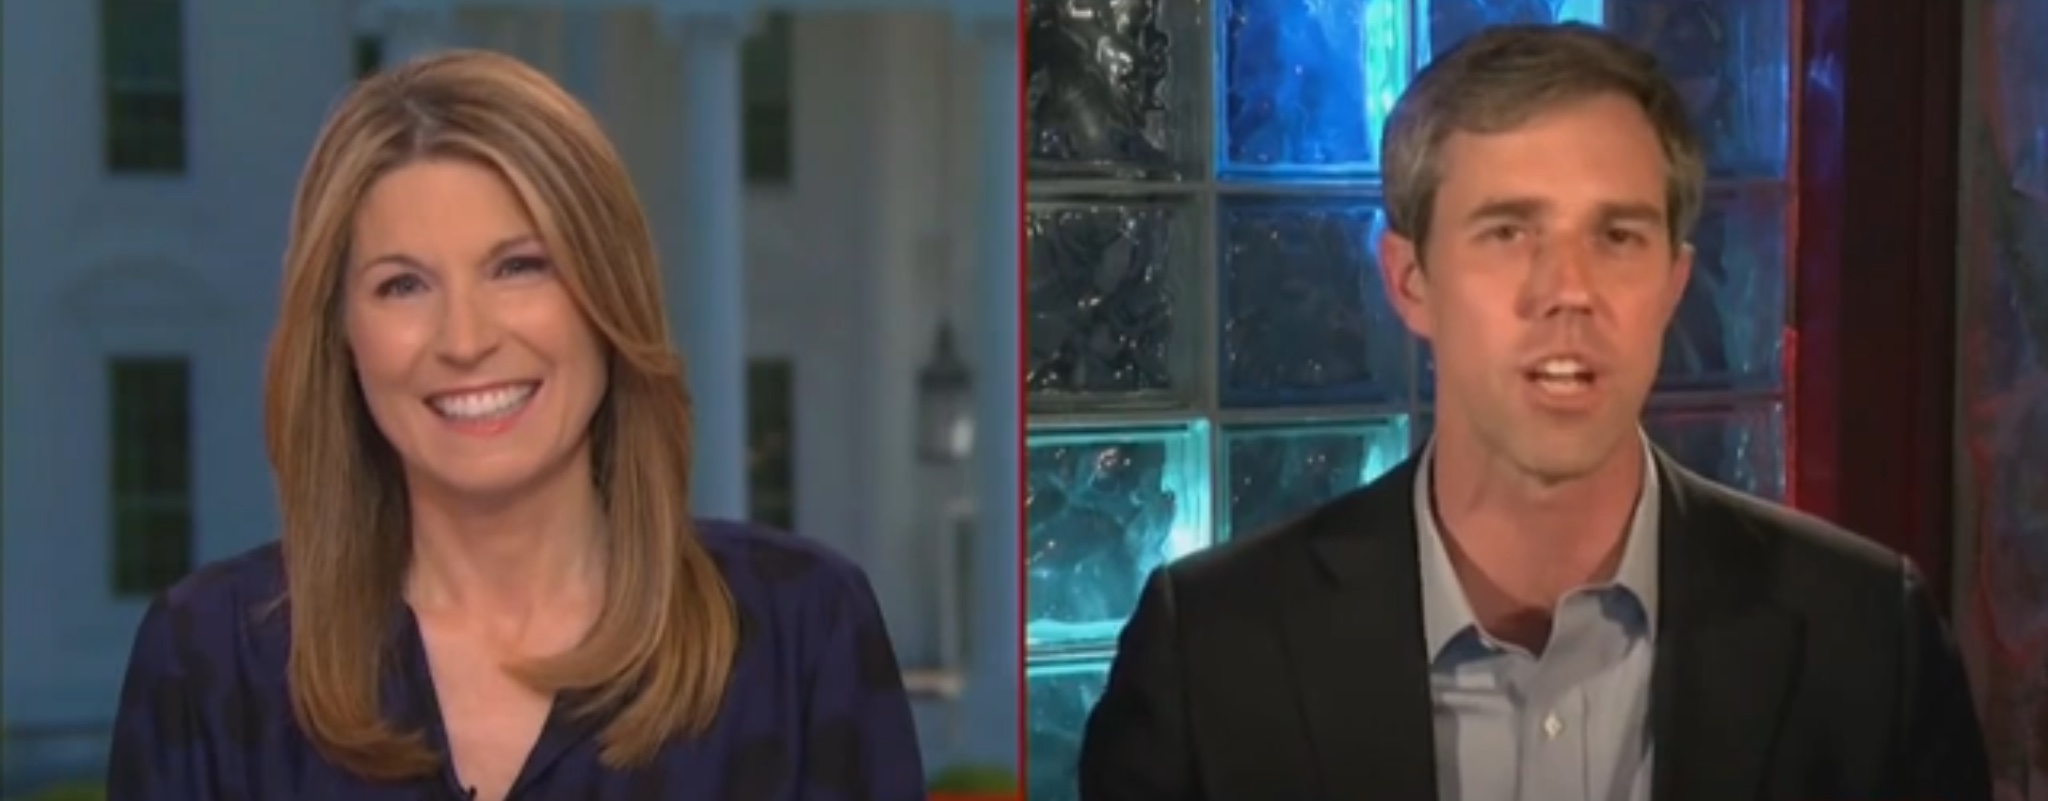 MSNBC's Nicolle Wallace Asks Beto: 'What Can We Do Better' To Cover Your Campaign